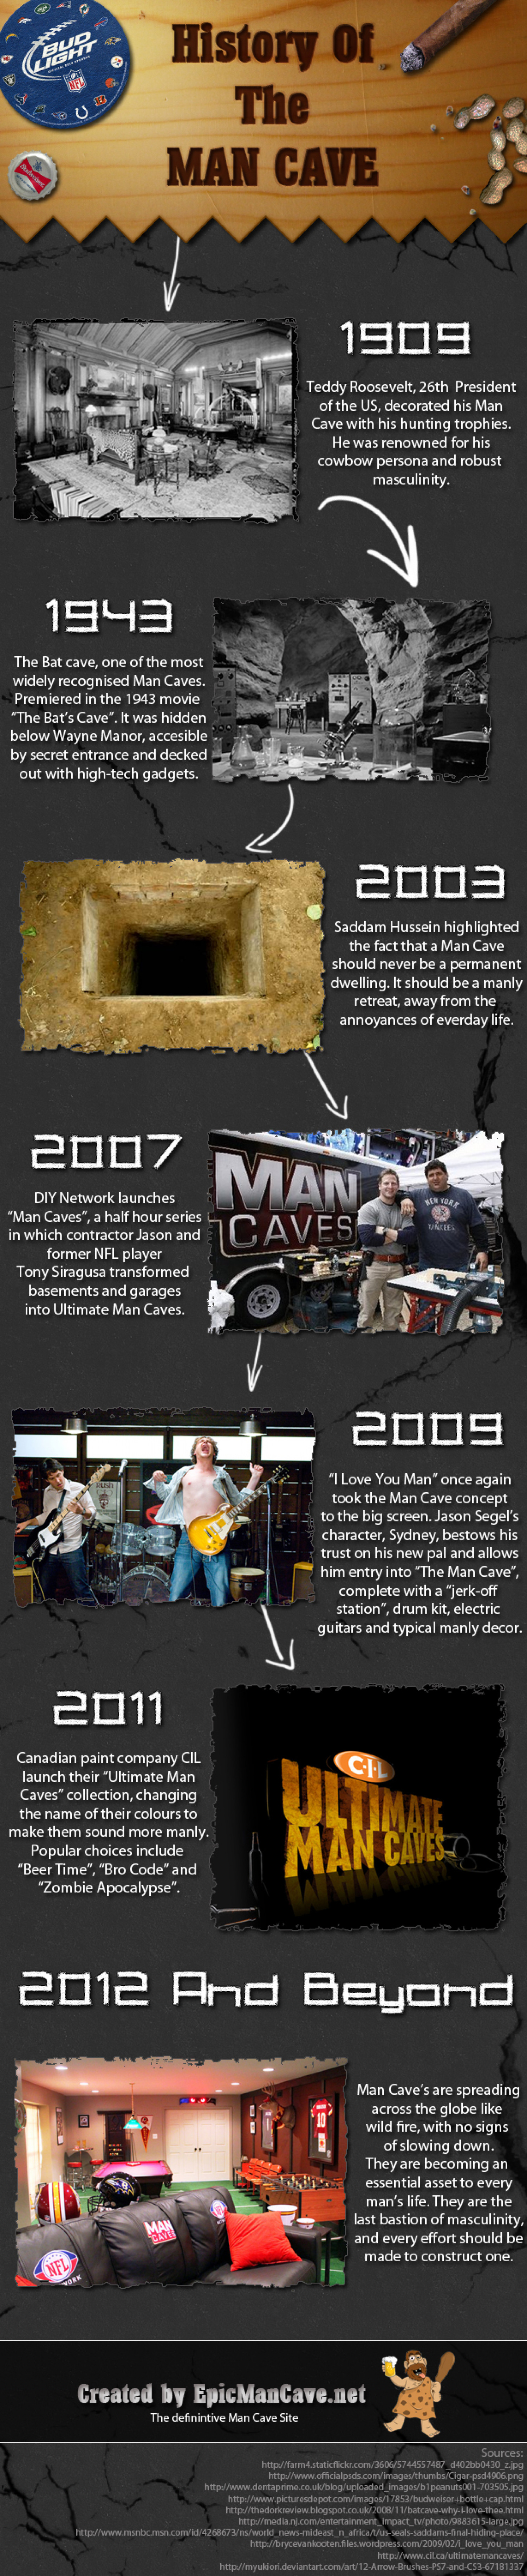 History Of The Man Cave Infographic